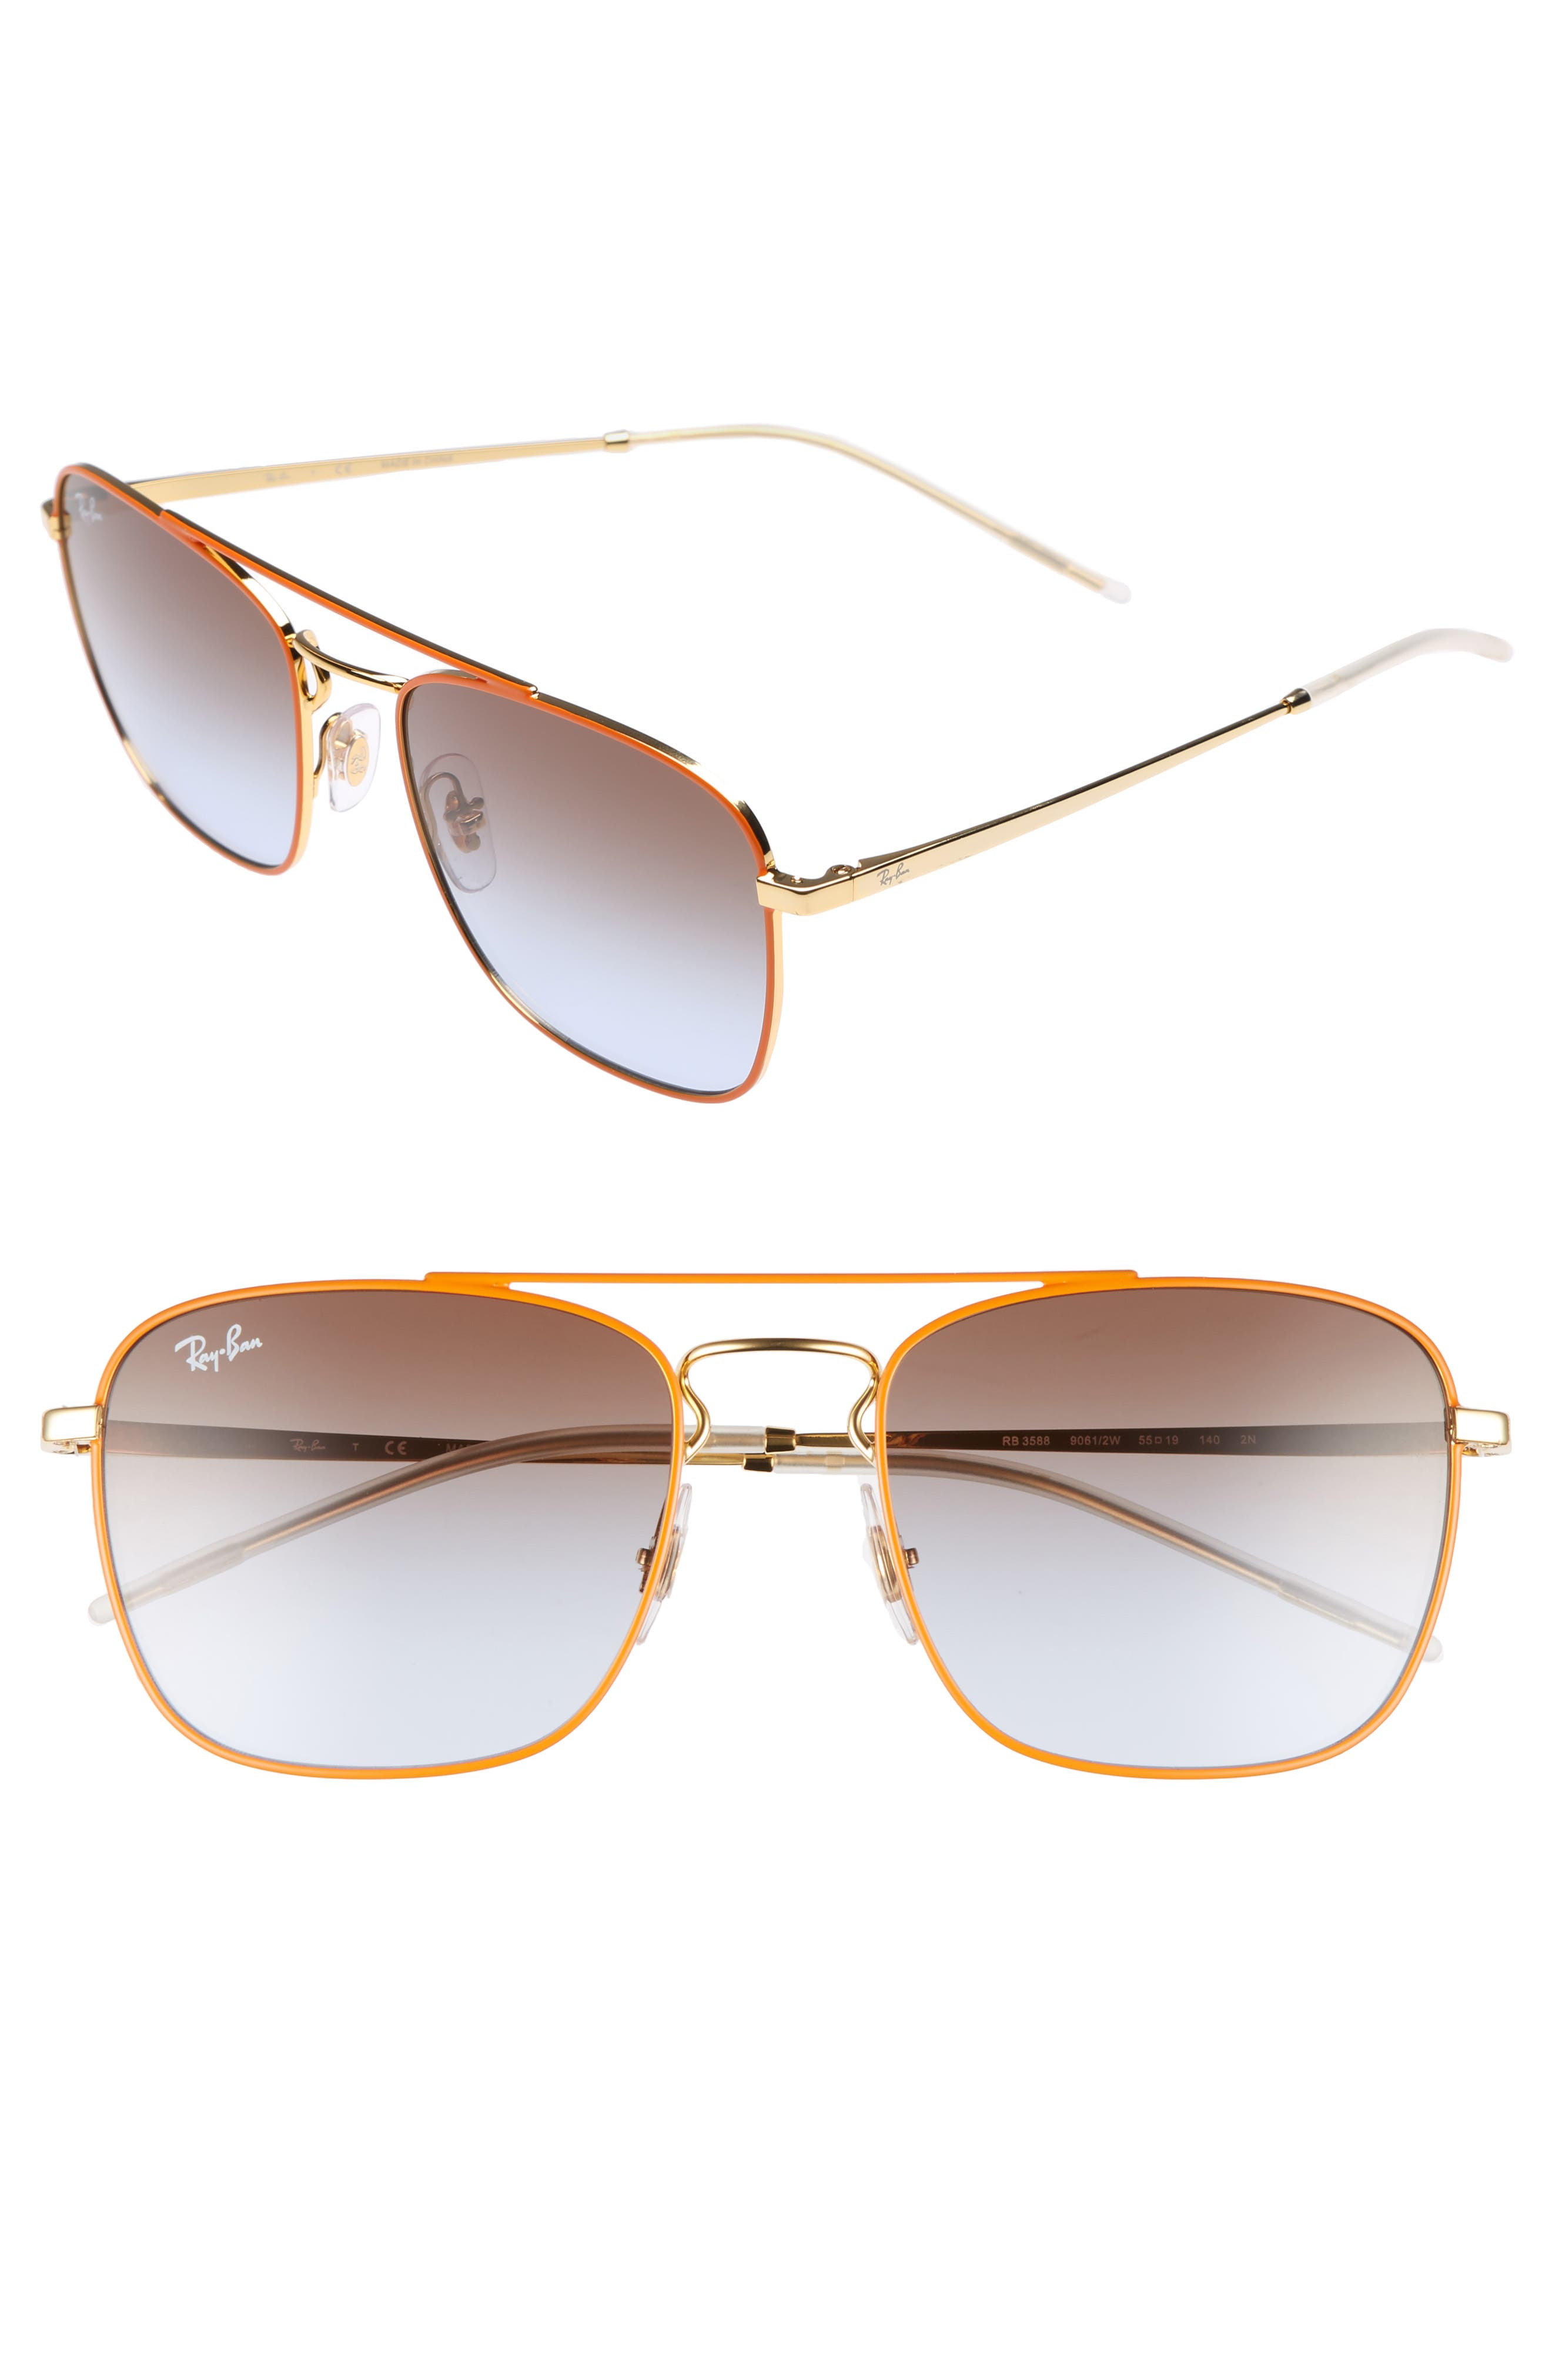 Main Image - Ray-Ban Youngster Double Bridge 55mm Sunglasses